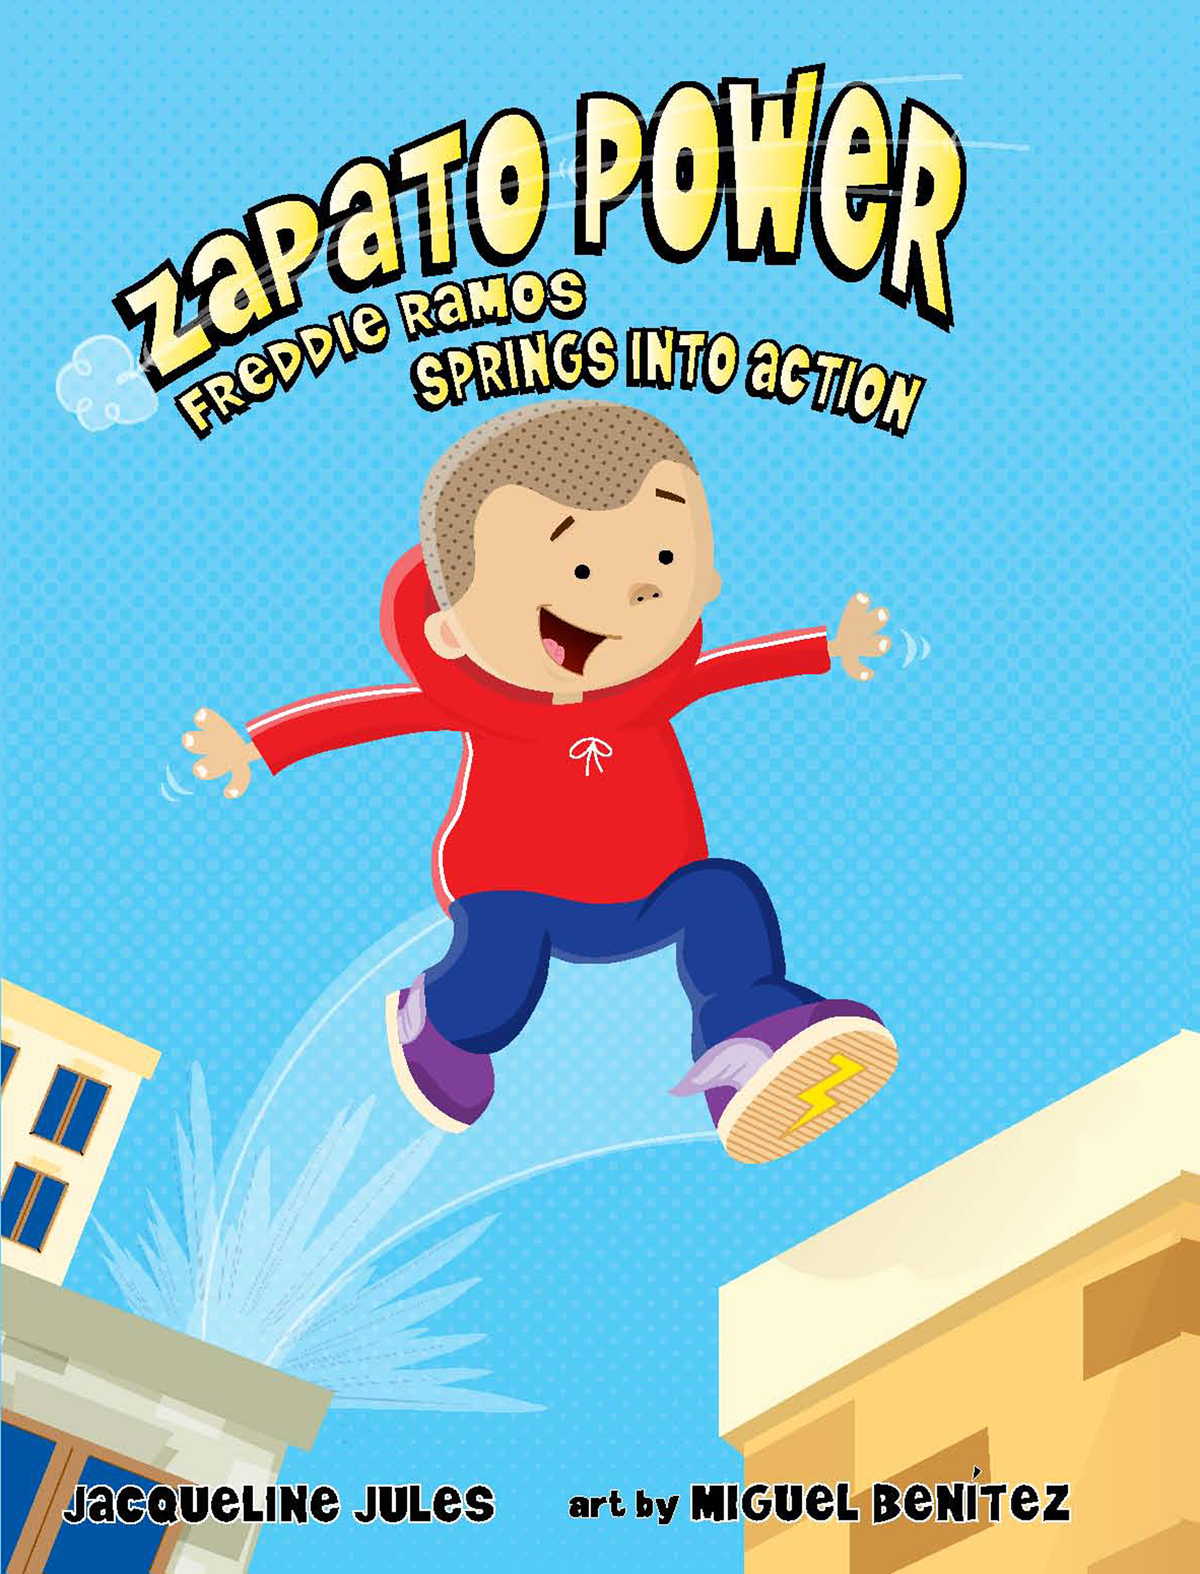 Zapato Power: Freddie Ramos Springs into Action, the second book in the fun-filled Zapato Power series